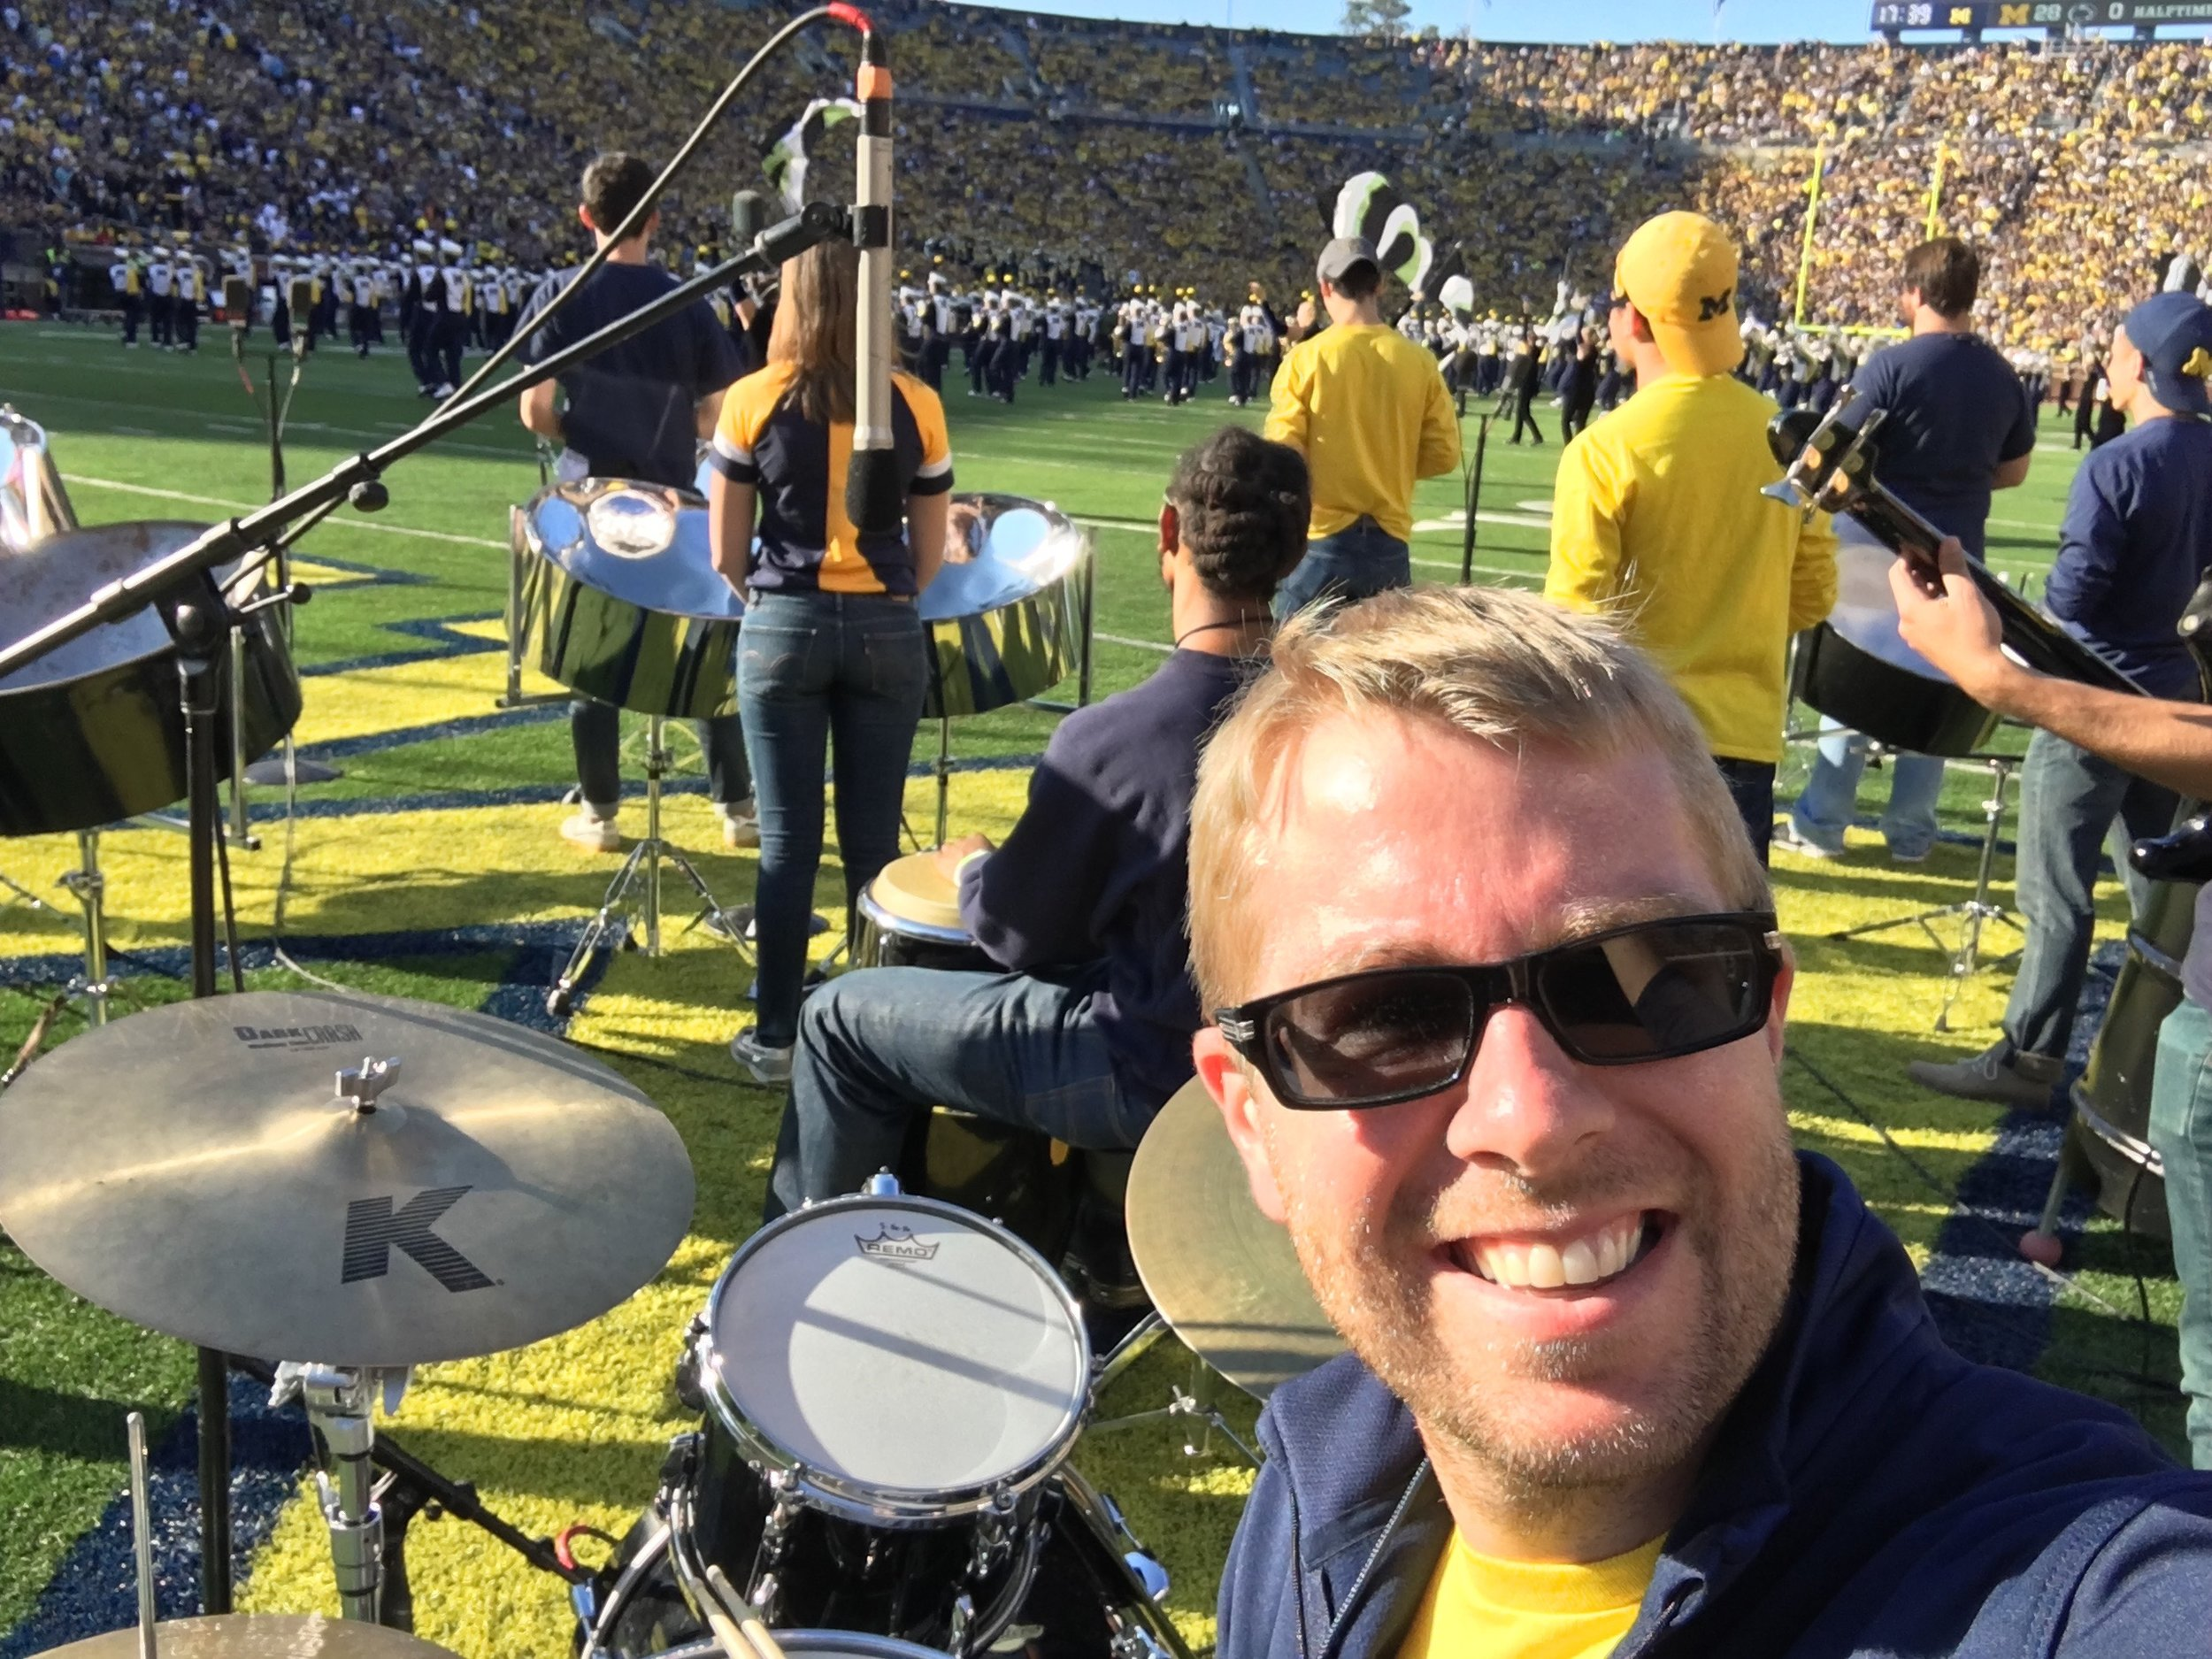 University of Michigan Steelband Performing in the football half-time show for a sold out Big House!